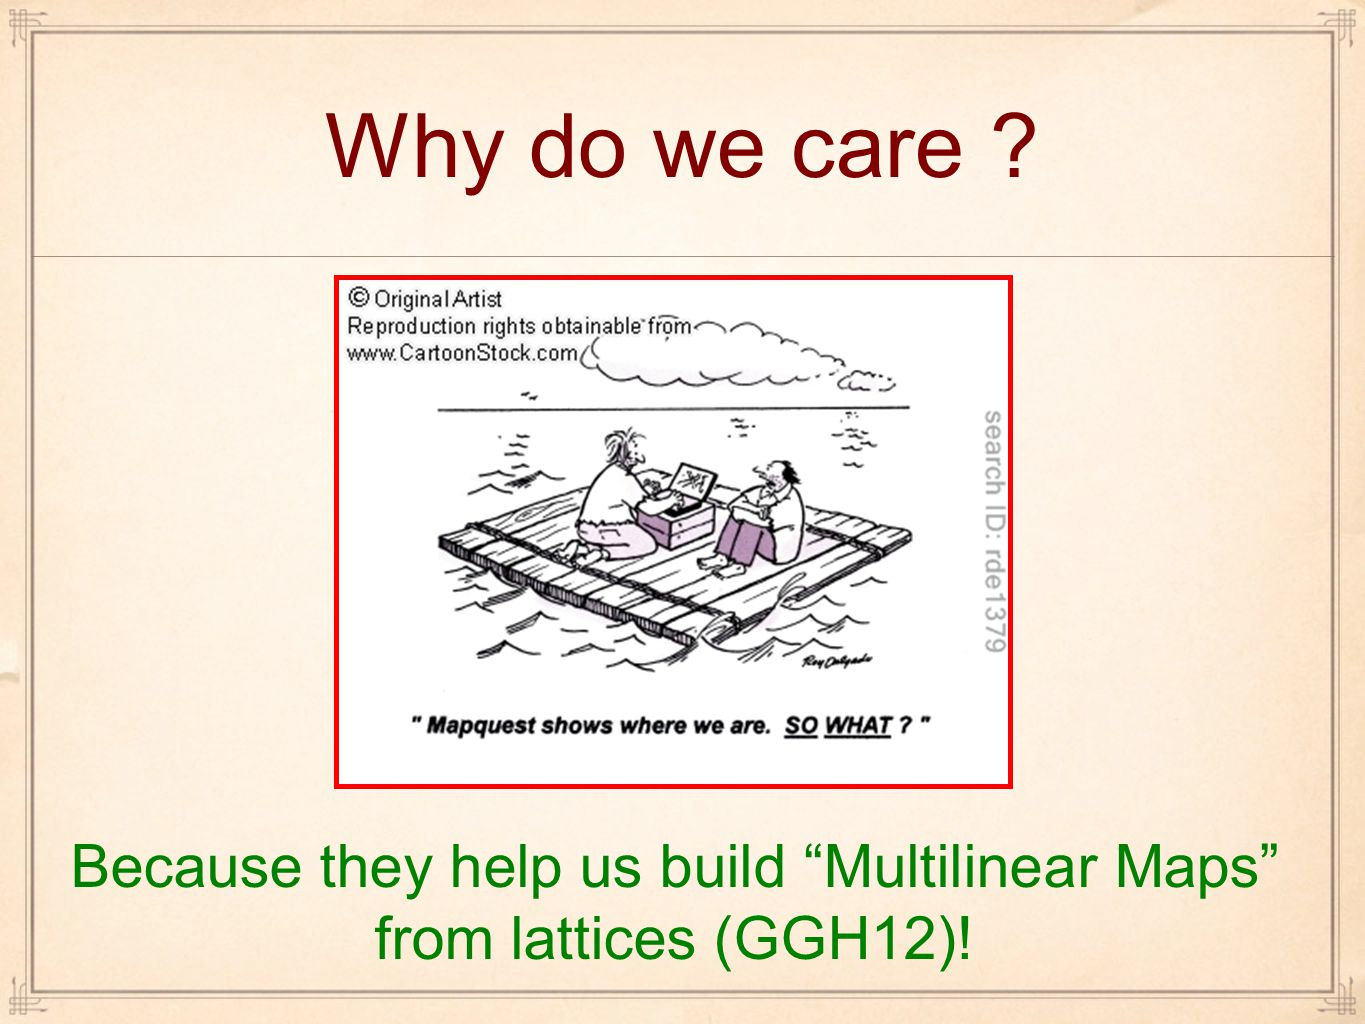 Because they help us build Multilinear Maps from lattices (GGH12)!